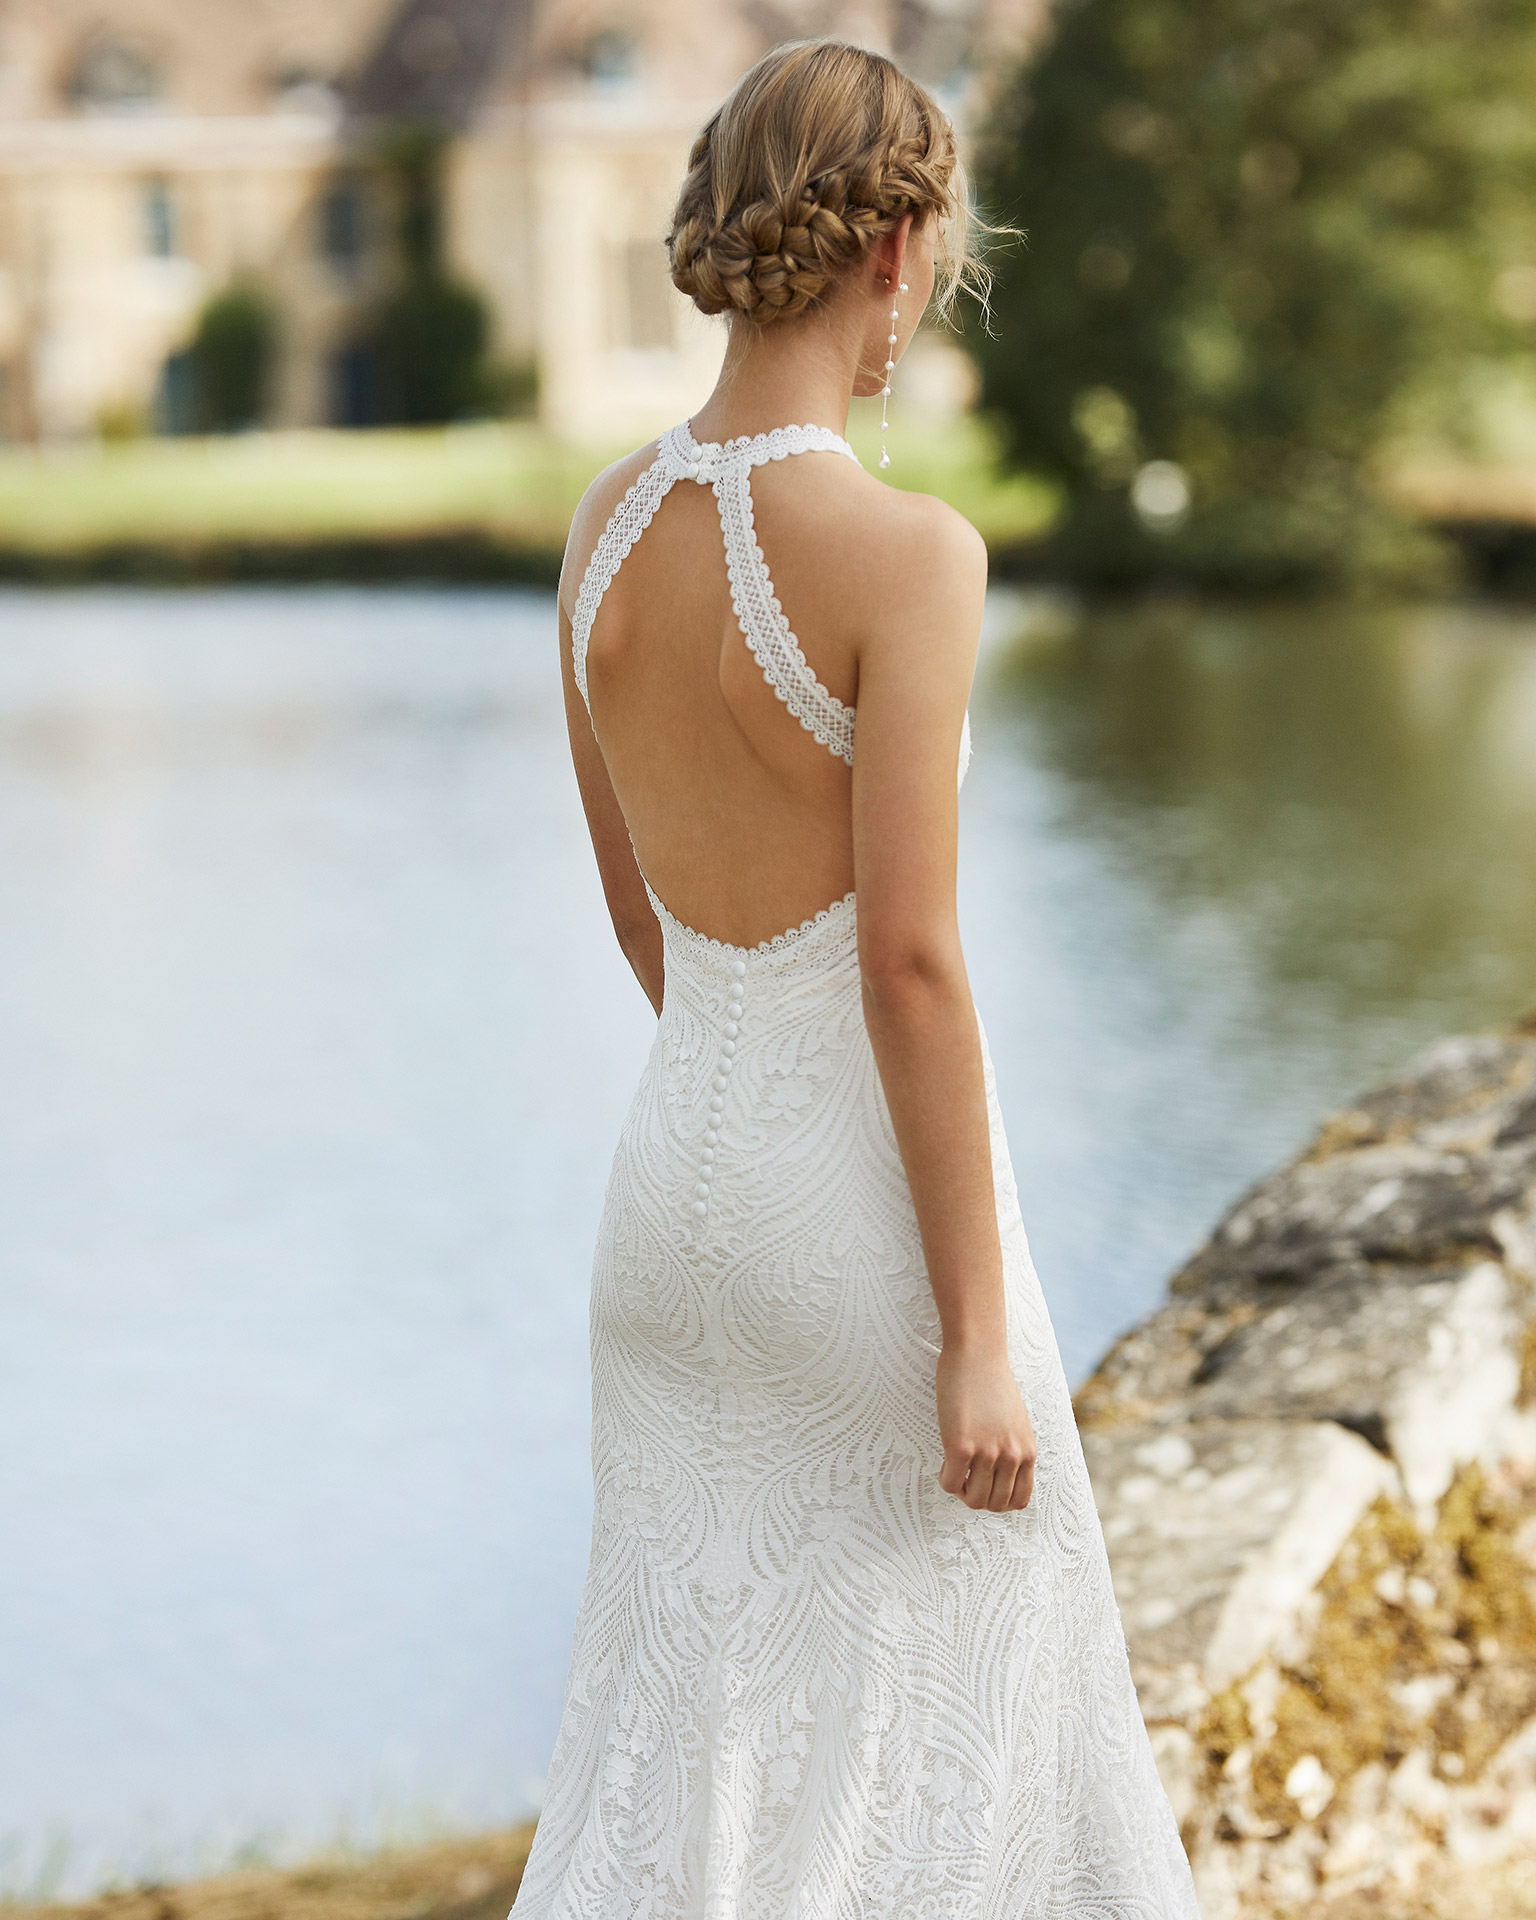 Lace wedding dress. Halter neckline and low back with two shoulder straps attached to collar. 2021 ALMANOVIA Collection.